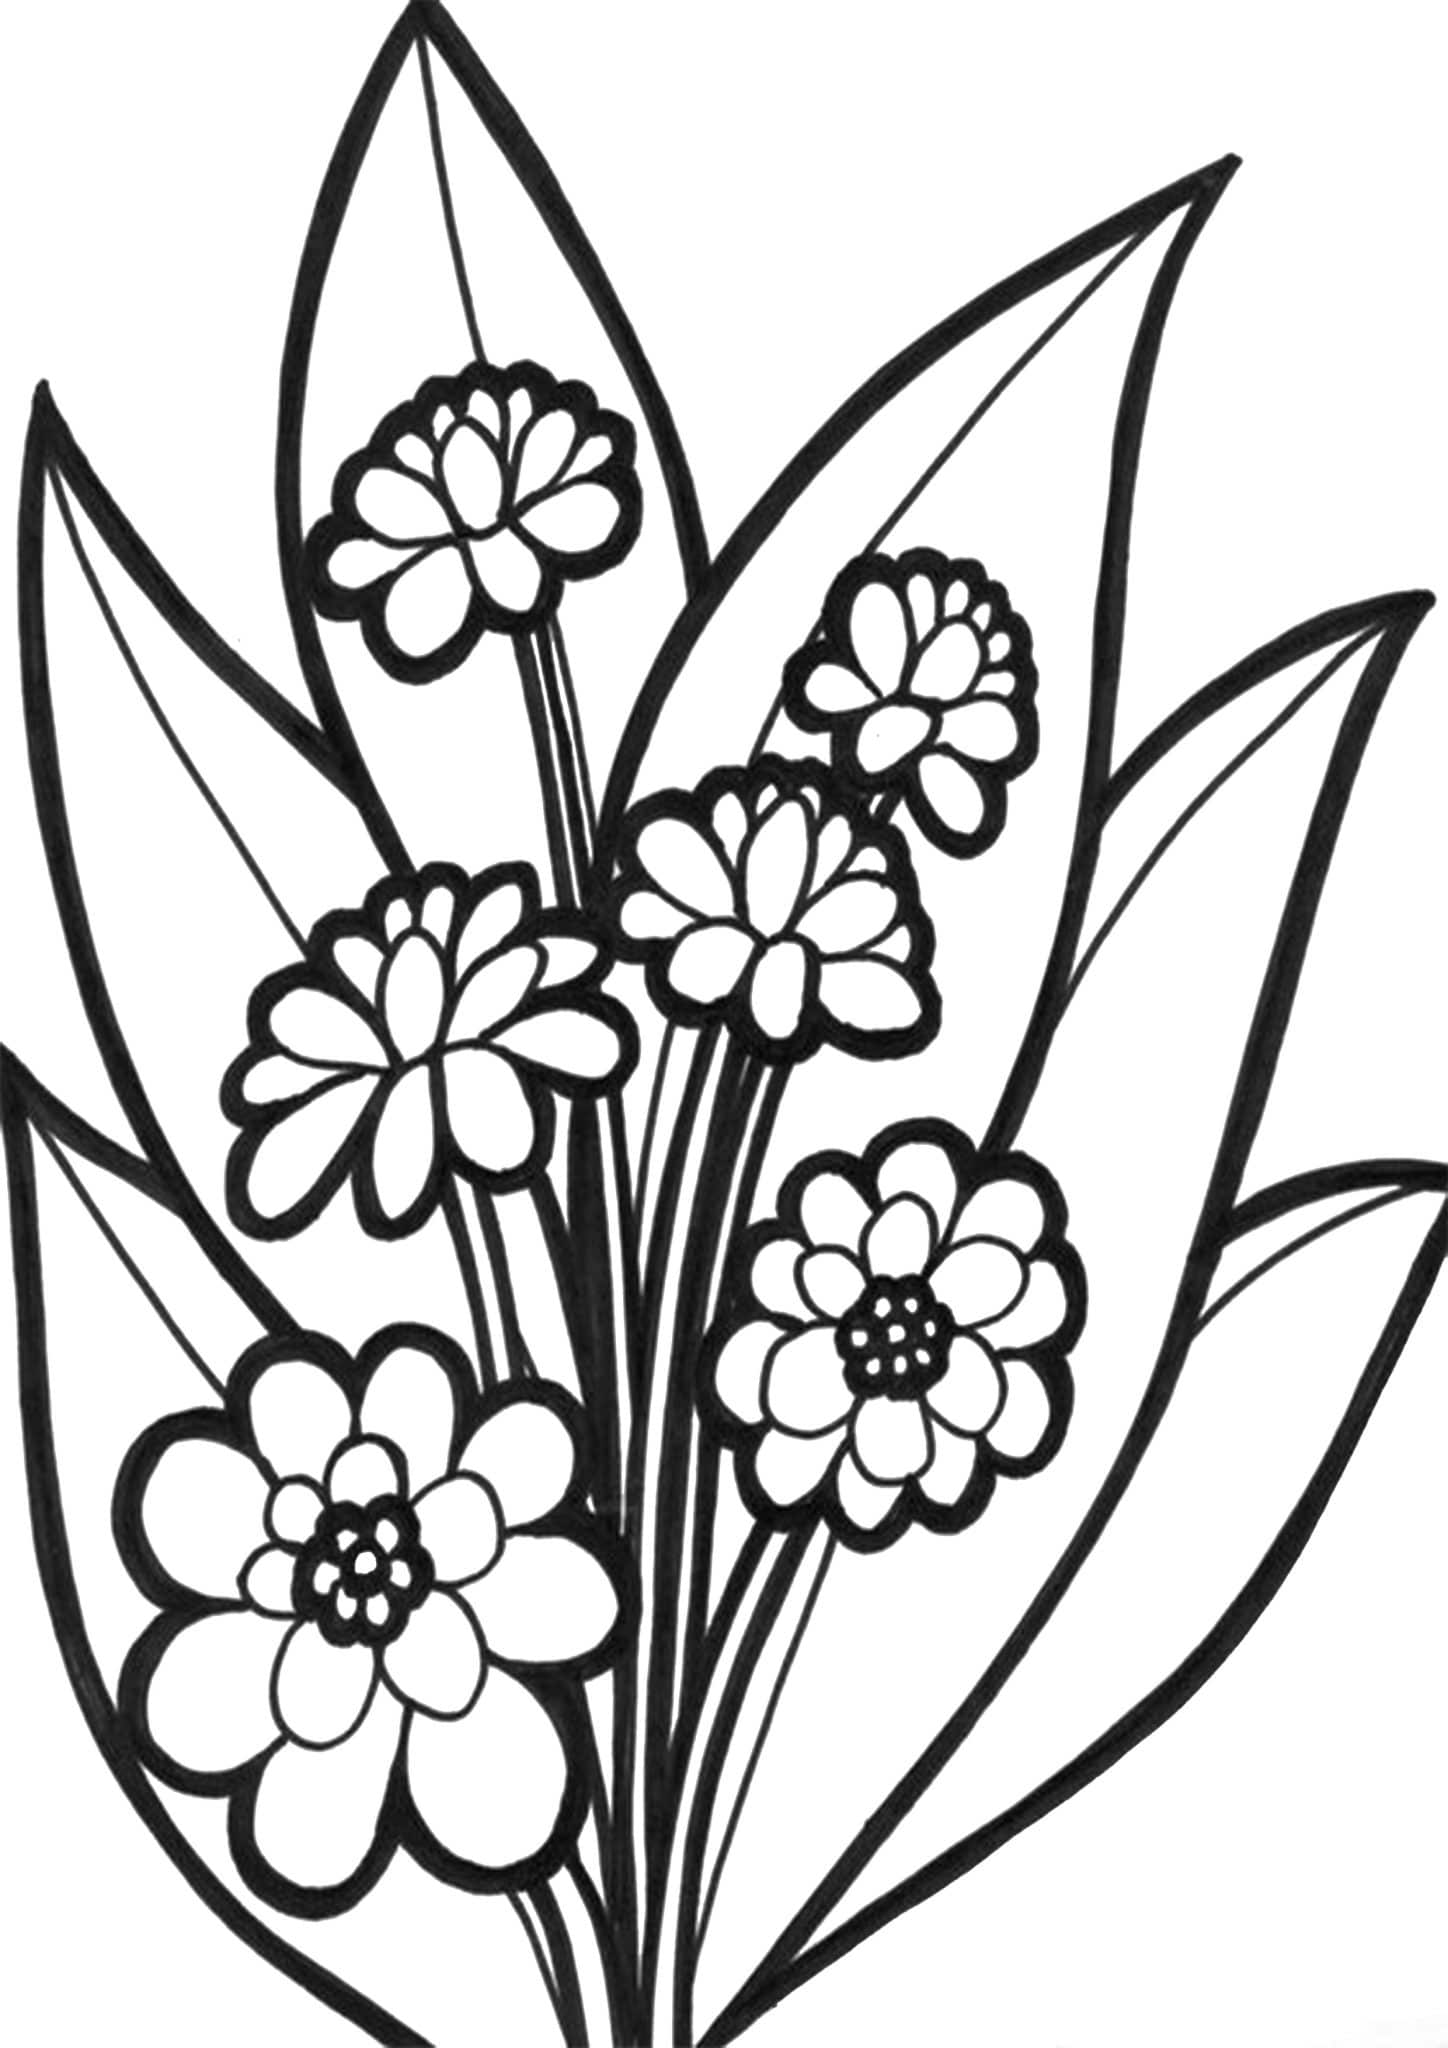 coloring pages flowers printable free printable flower coloring pages for kids cool2bkids printable flowers coloring pages